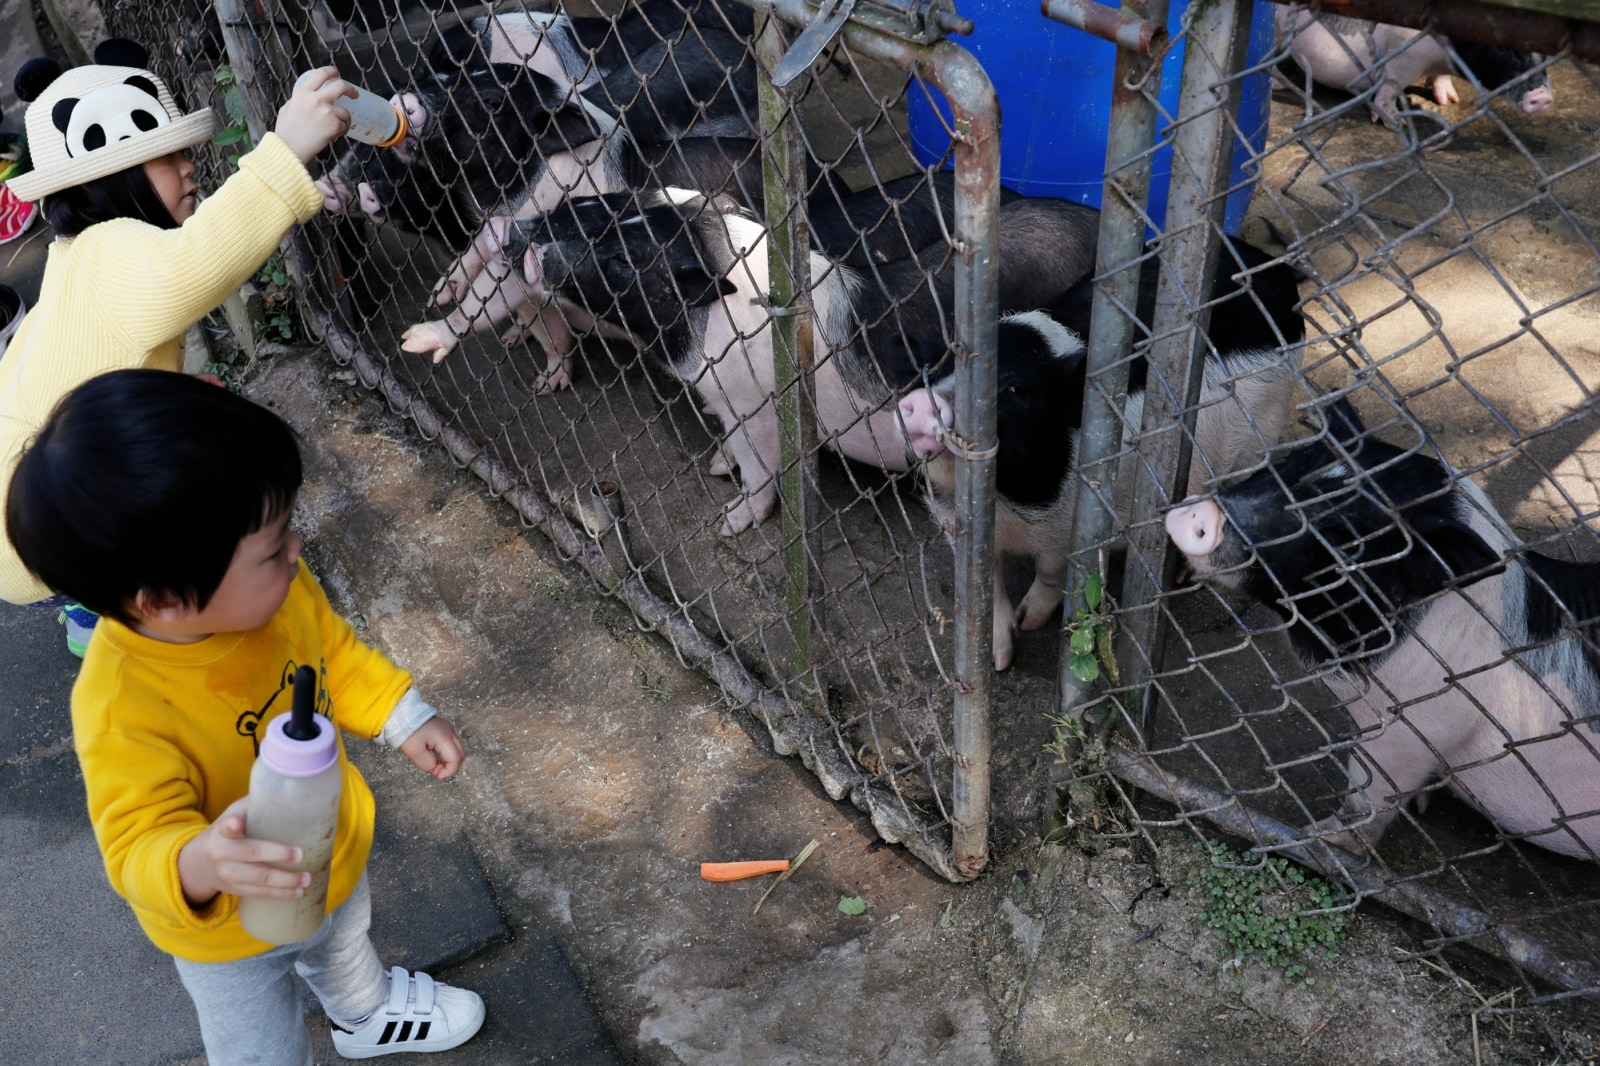 Children feed piglets at an animal farm that encourages customer to buy food to feed them or buy them, in Taoyuan, Taiwan January 31, 2019. REUTERS/Tyrone Siu